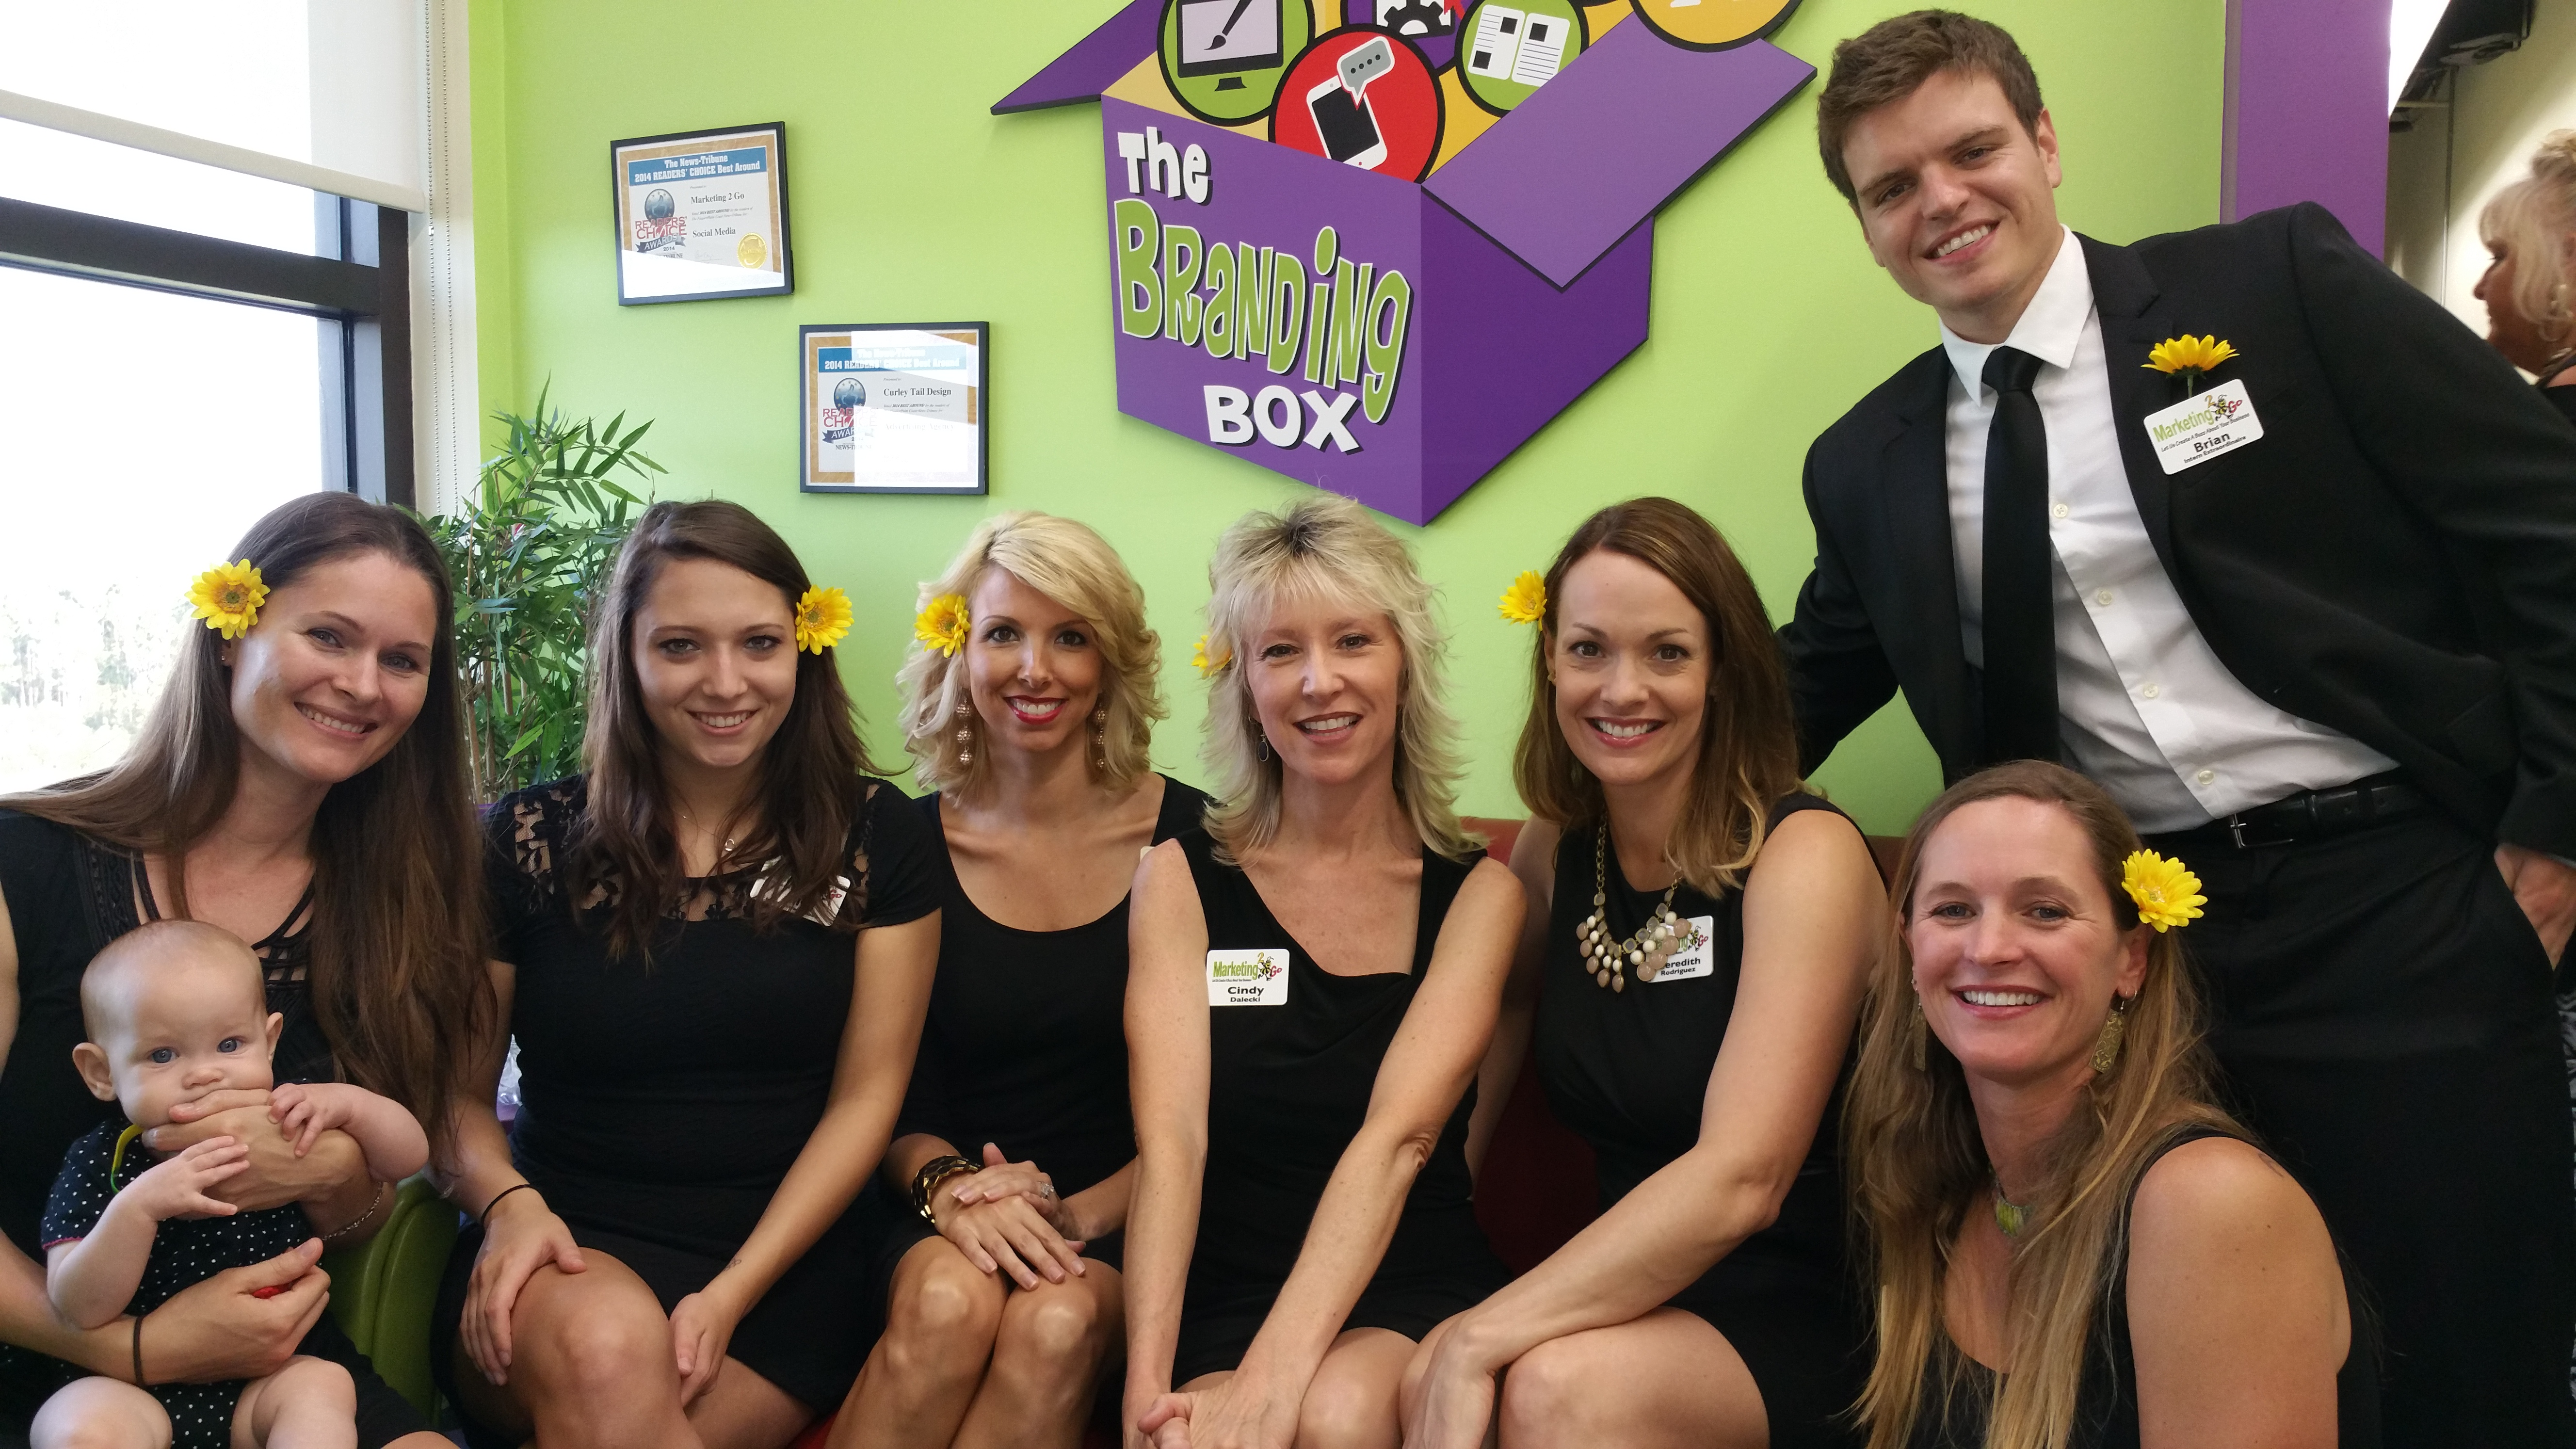 marketing go celebrates years in new digs at city place in marketing 2 go ciondy dalecki